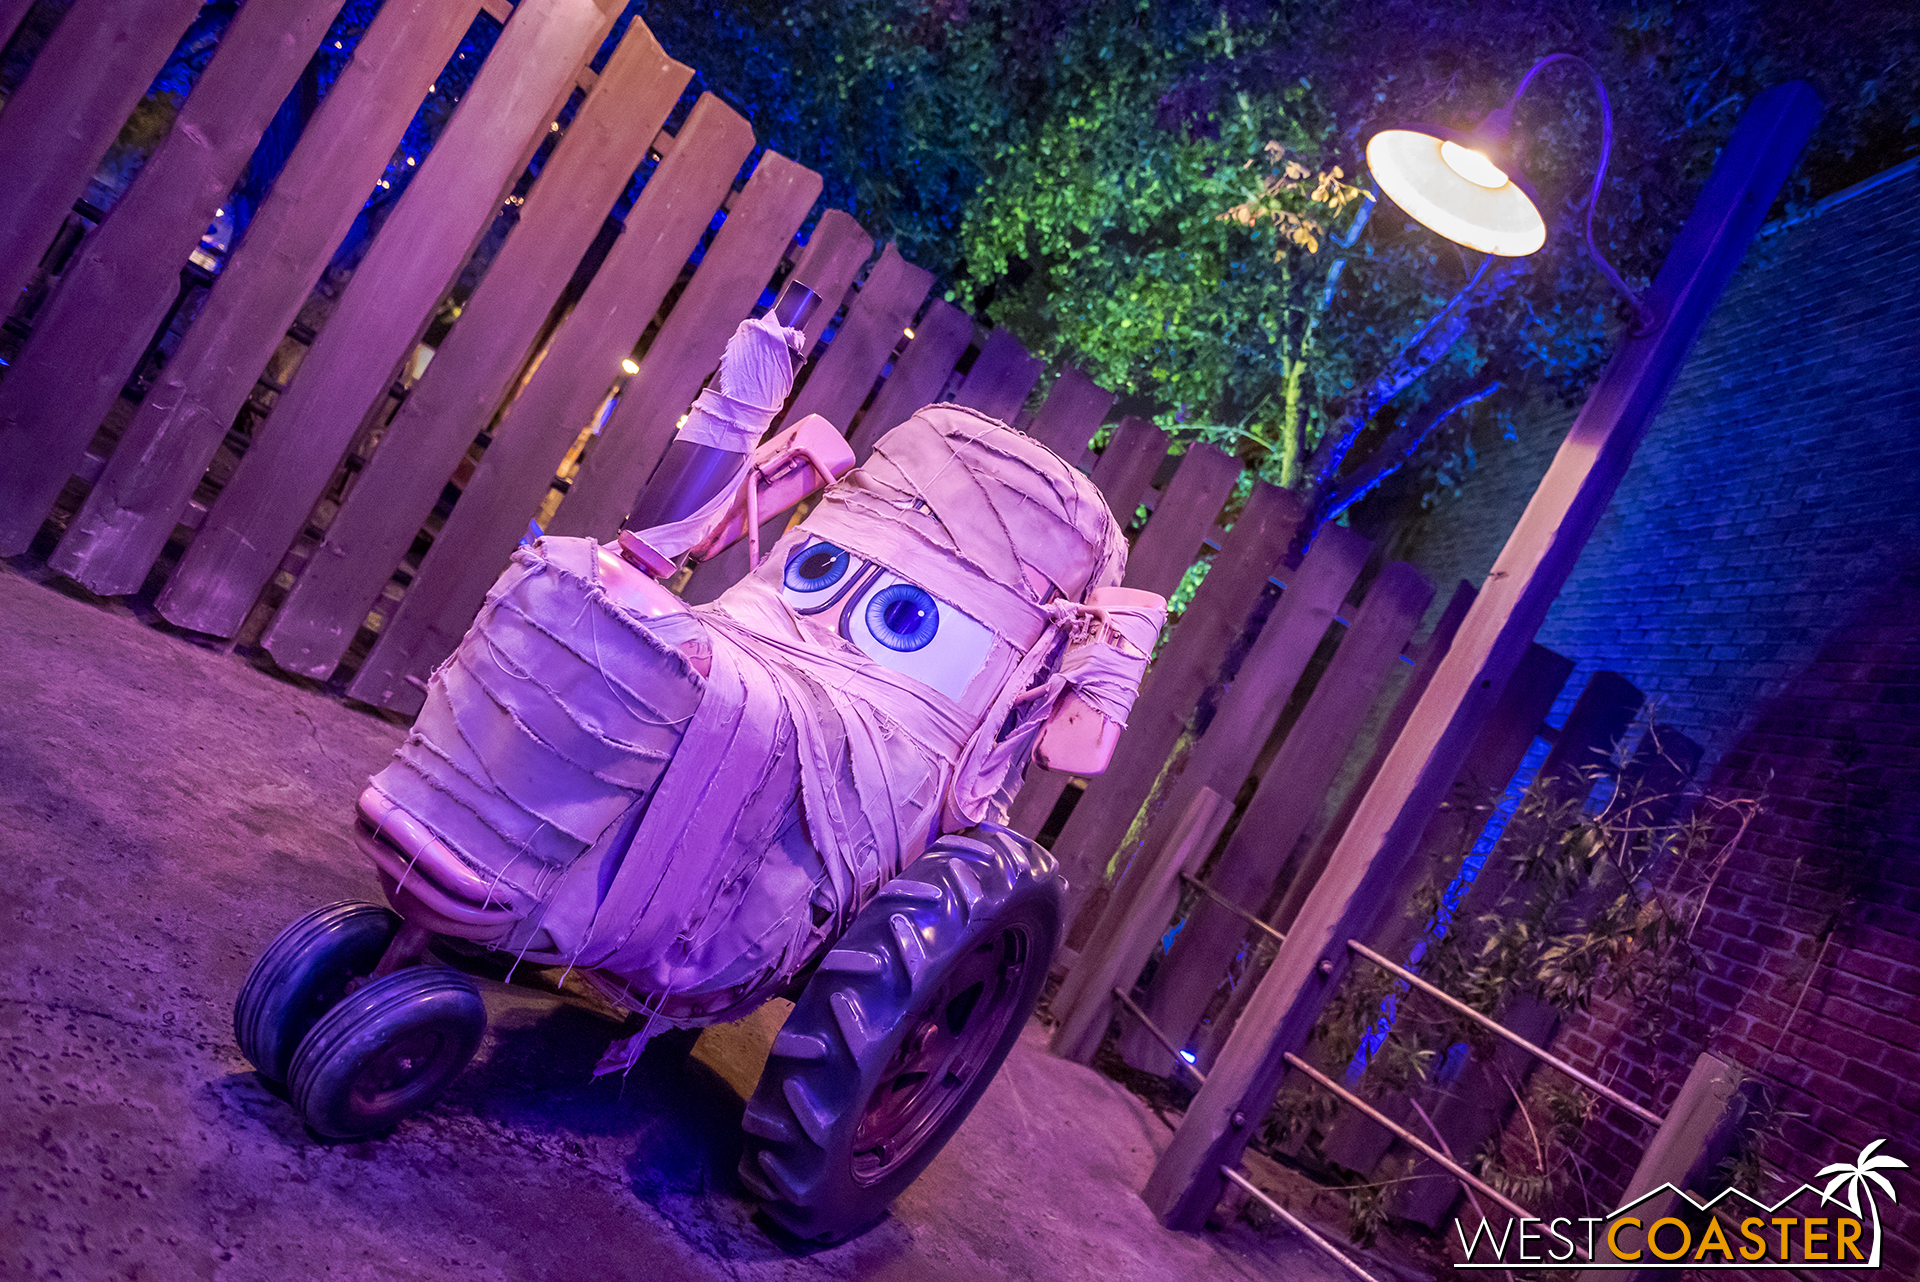 And Mater's tractors have gotten the mummy treatment.  Or MOOmmy treatment?